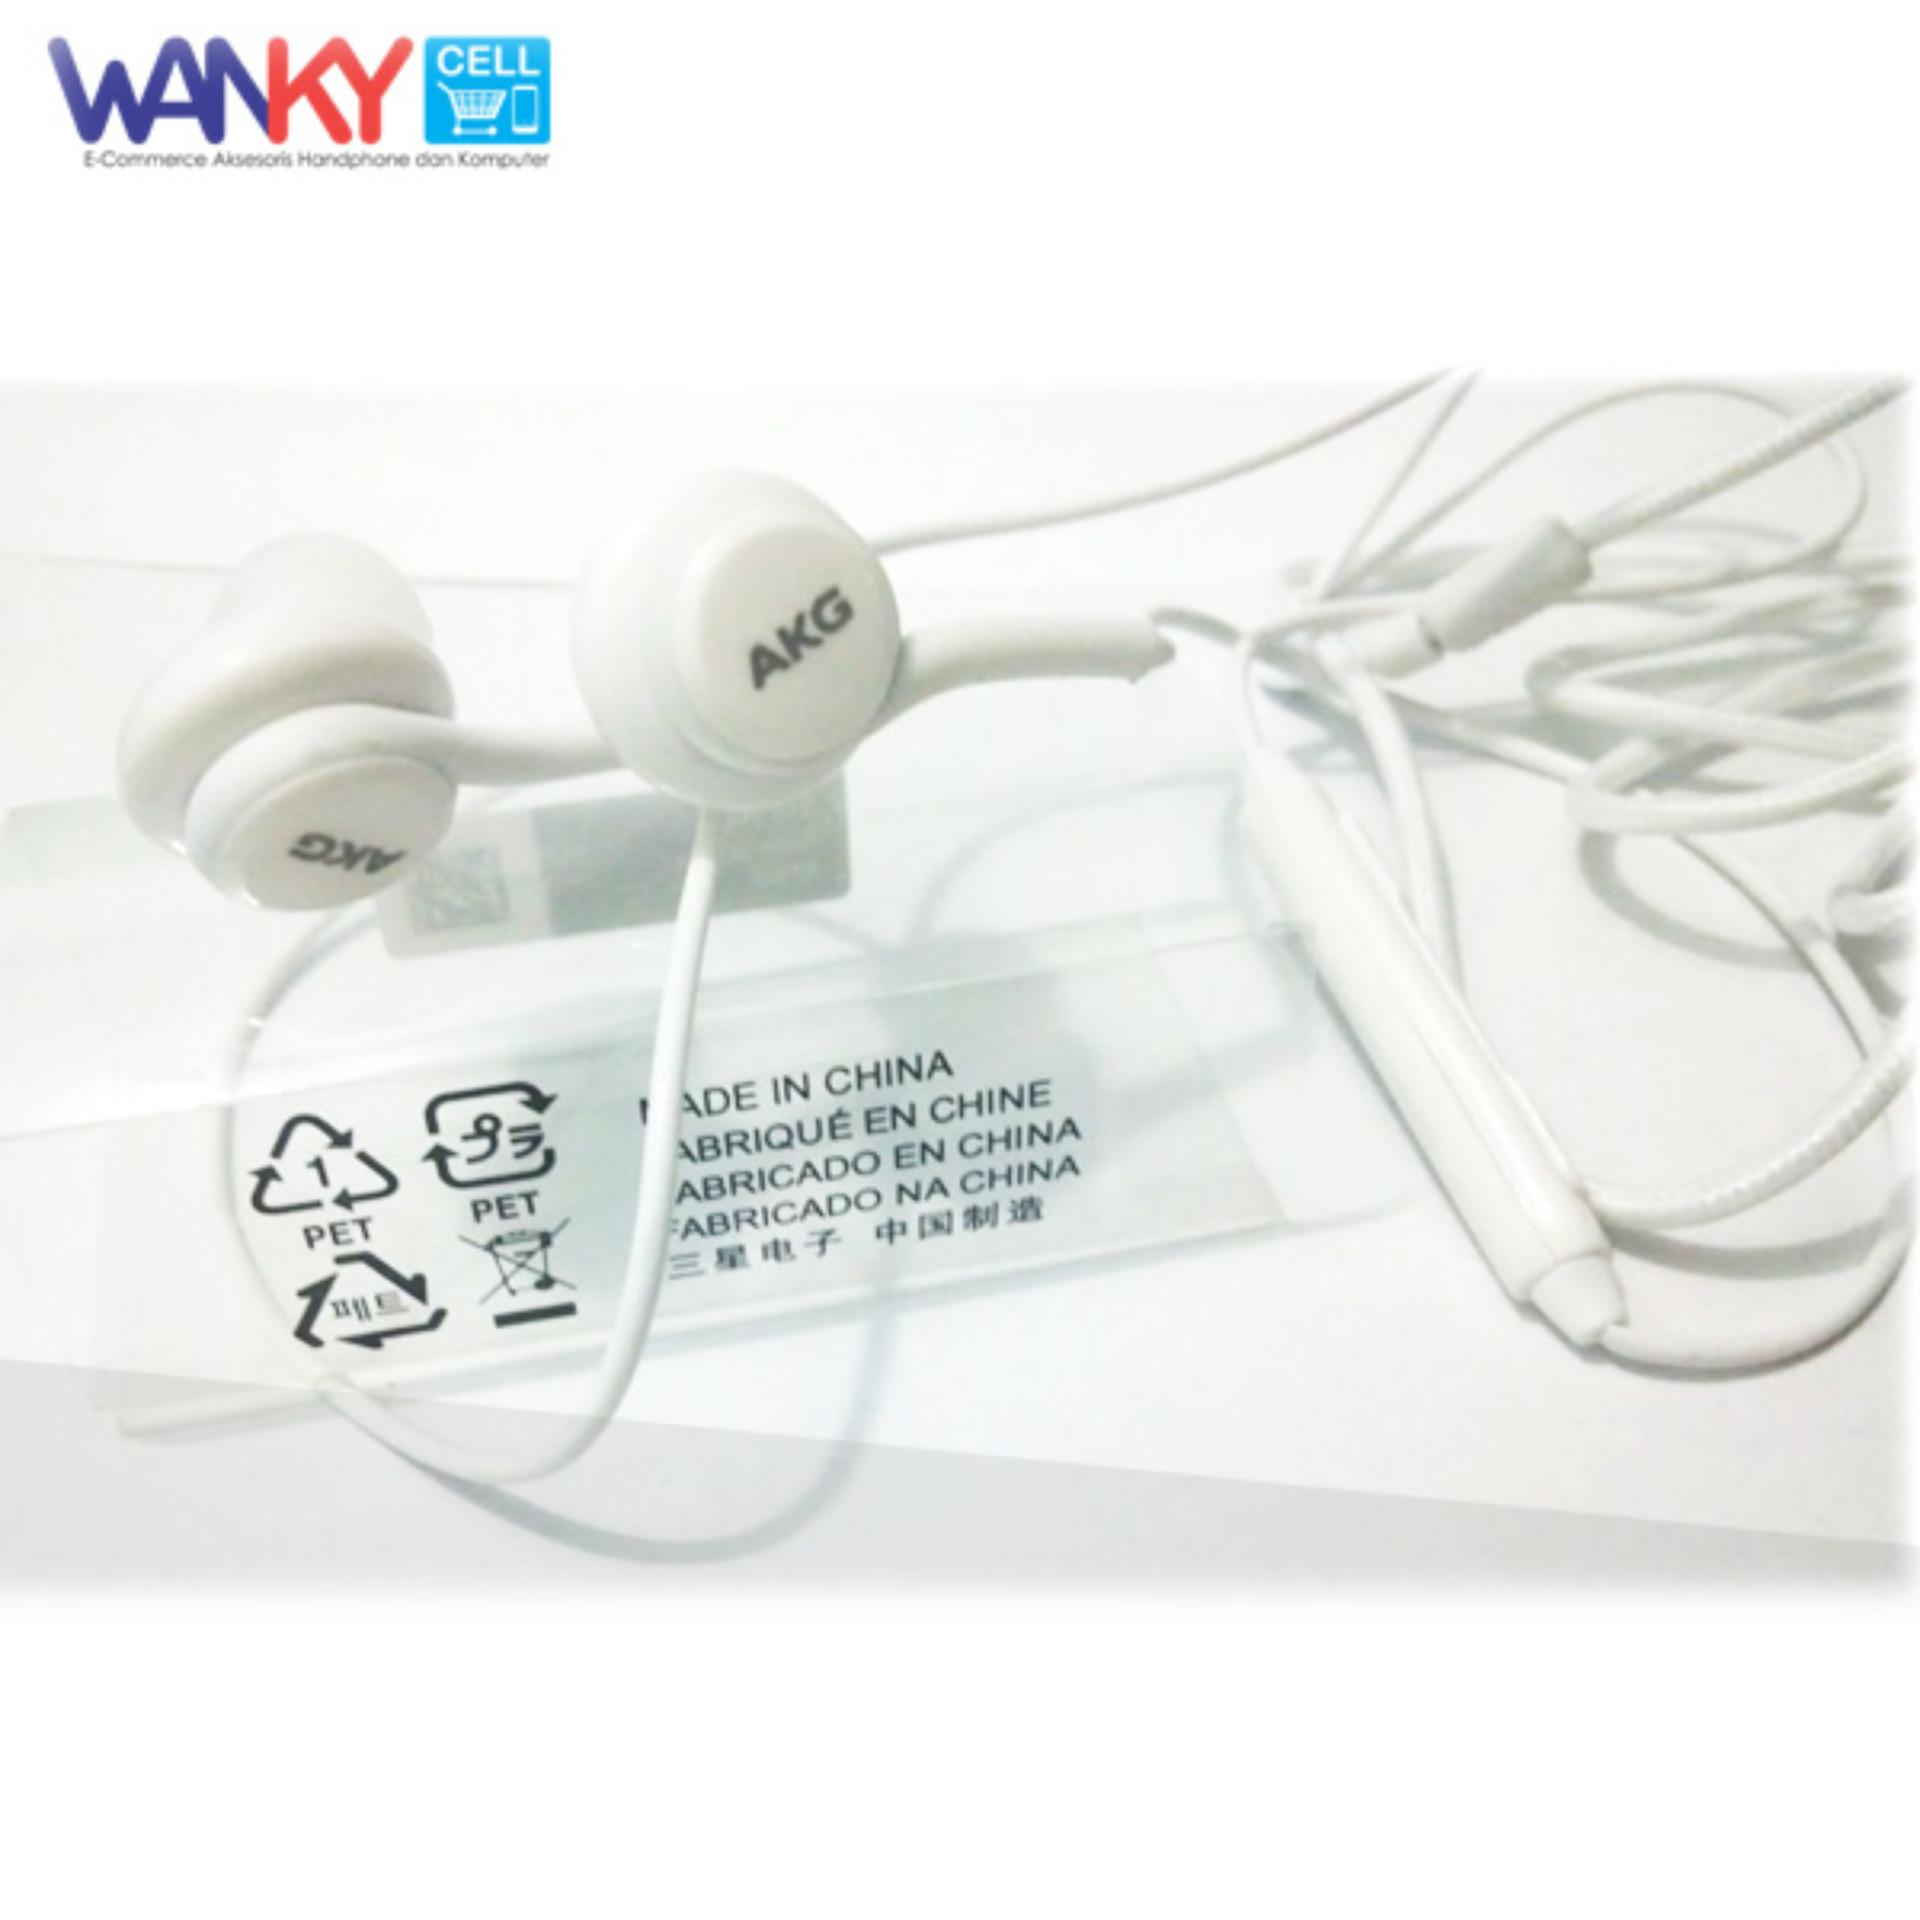 AKG Original Handsfree Headset Earphone For Samsung Galaxy S8 EO-IG955 Jack .